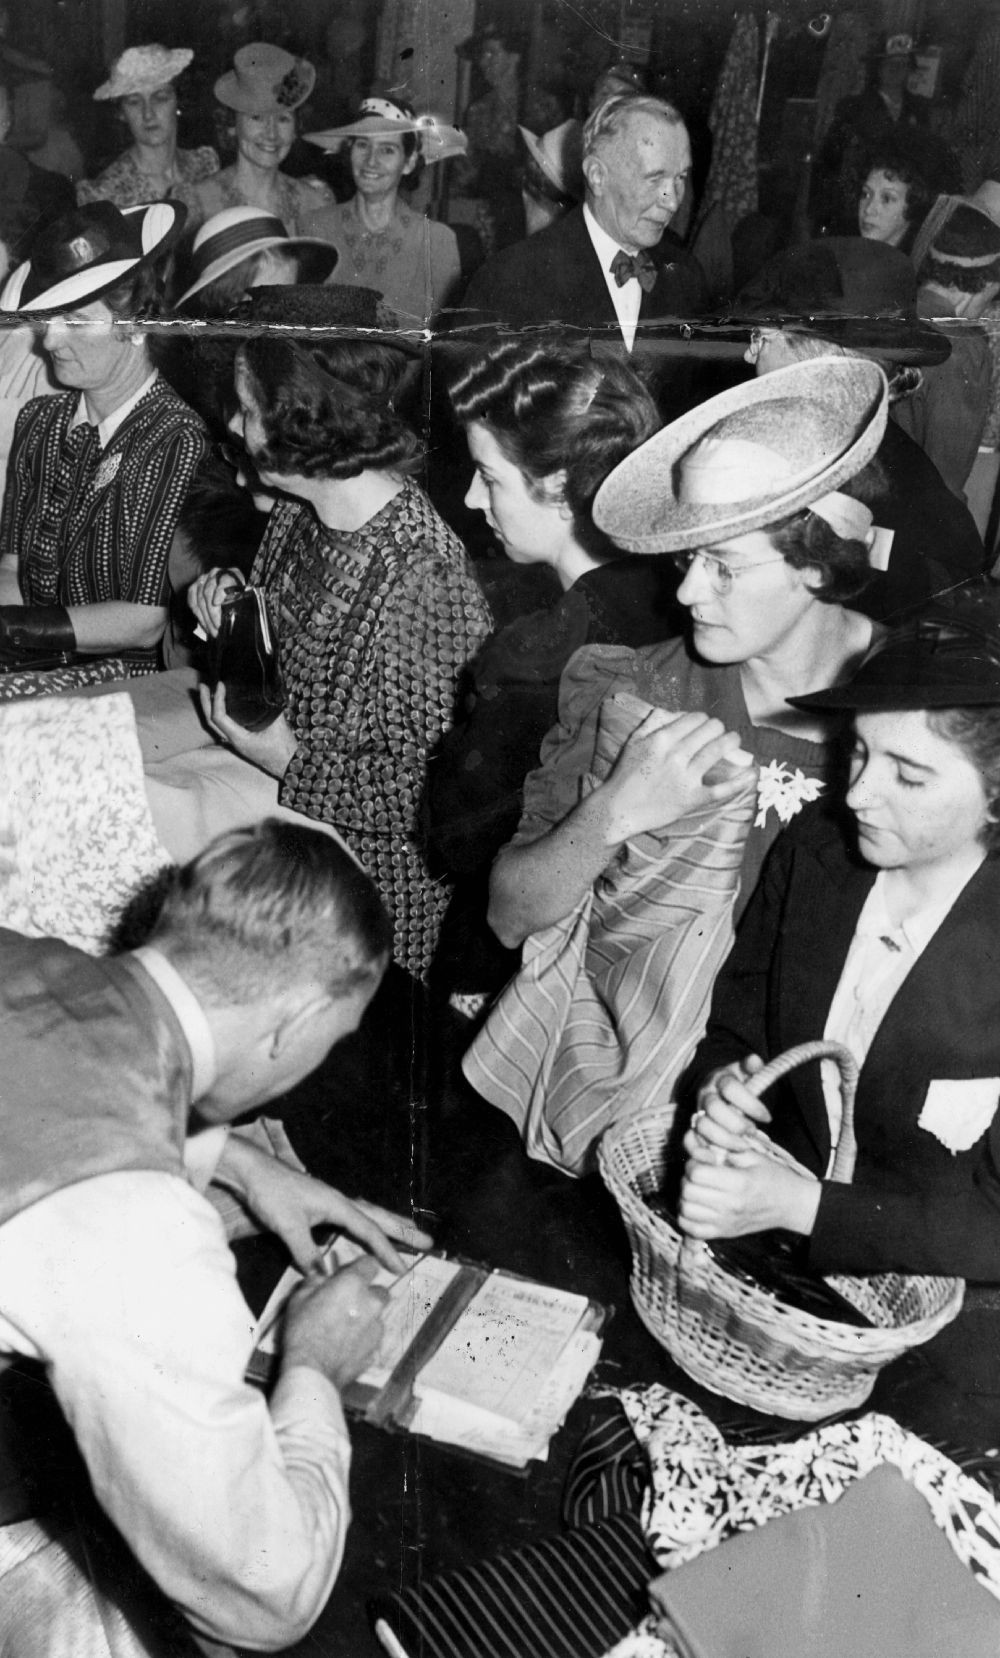 A group of women at a shop counter with a man serving them and writing in a receipt book